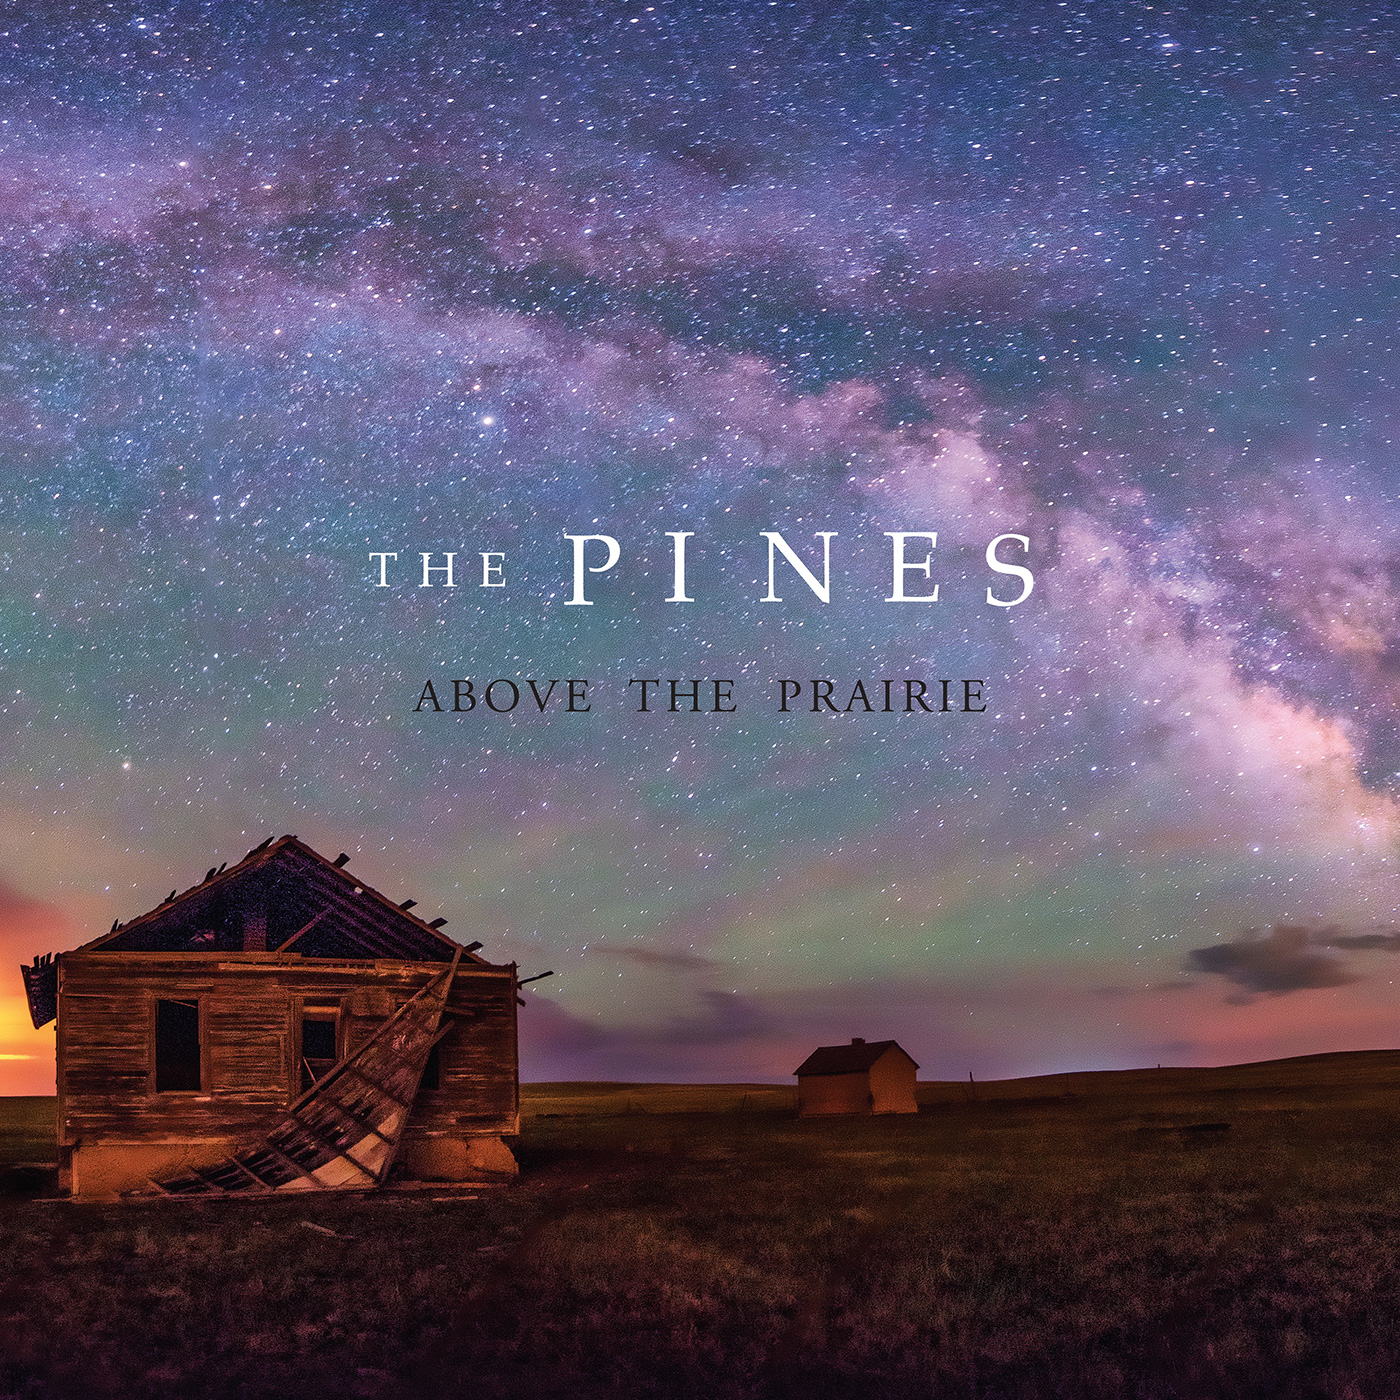 The Pines - Prairie.jpg